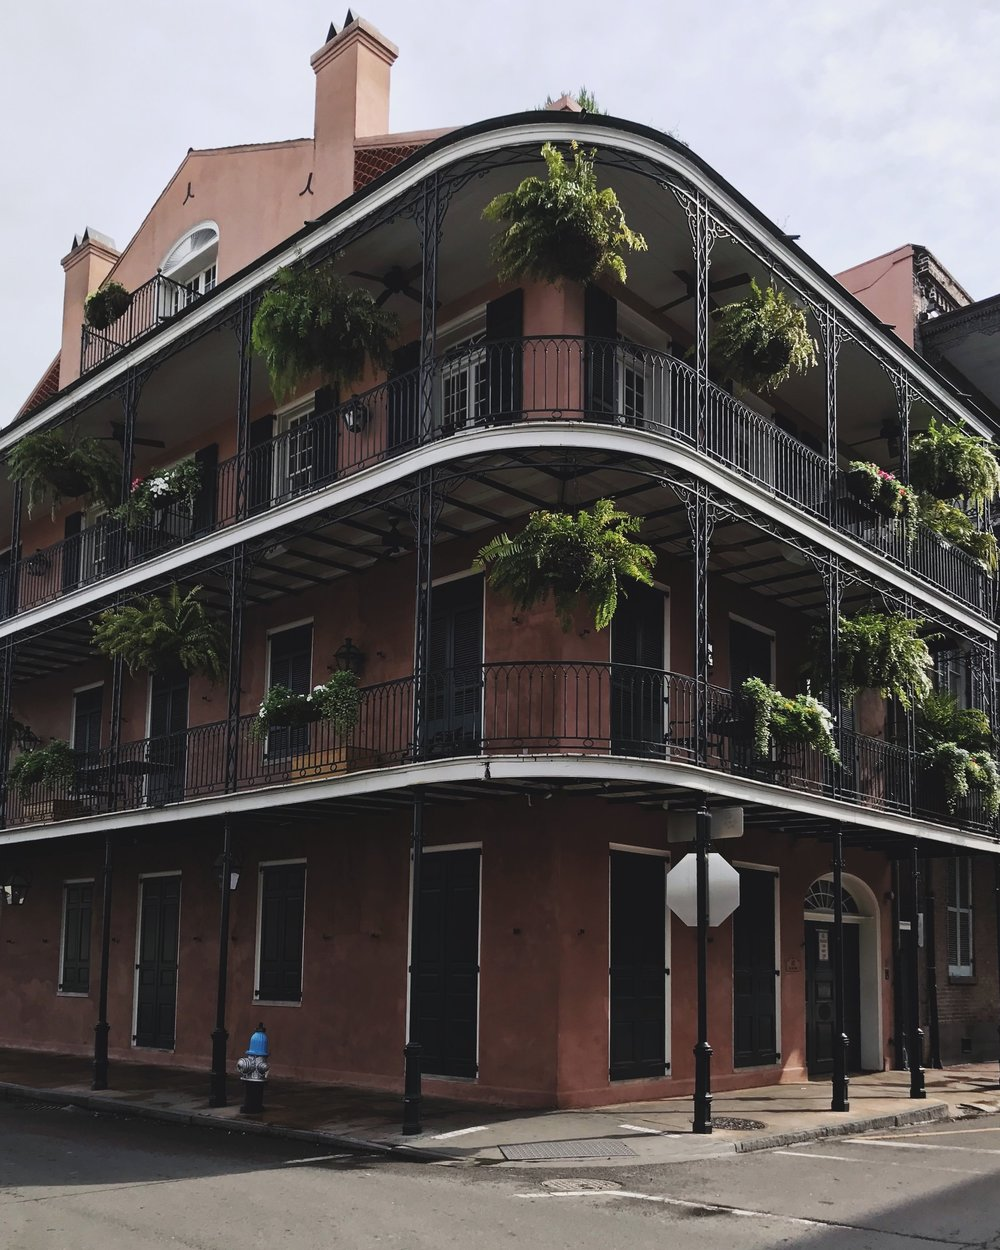 New Orleans Travel Guide - Lorenzo Mitil